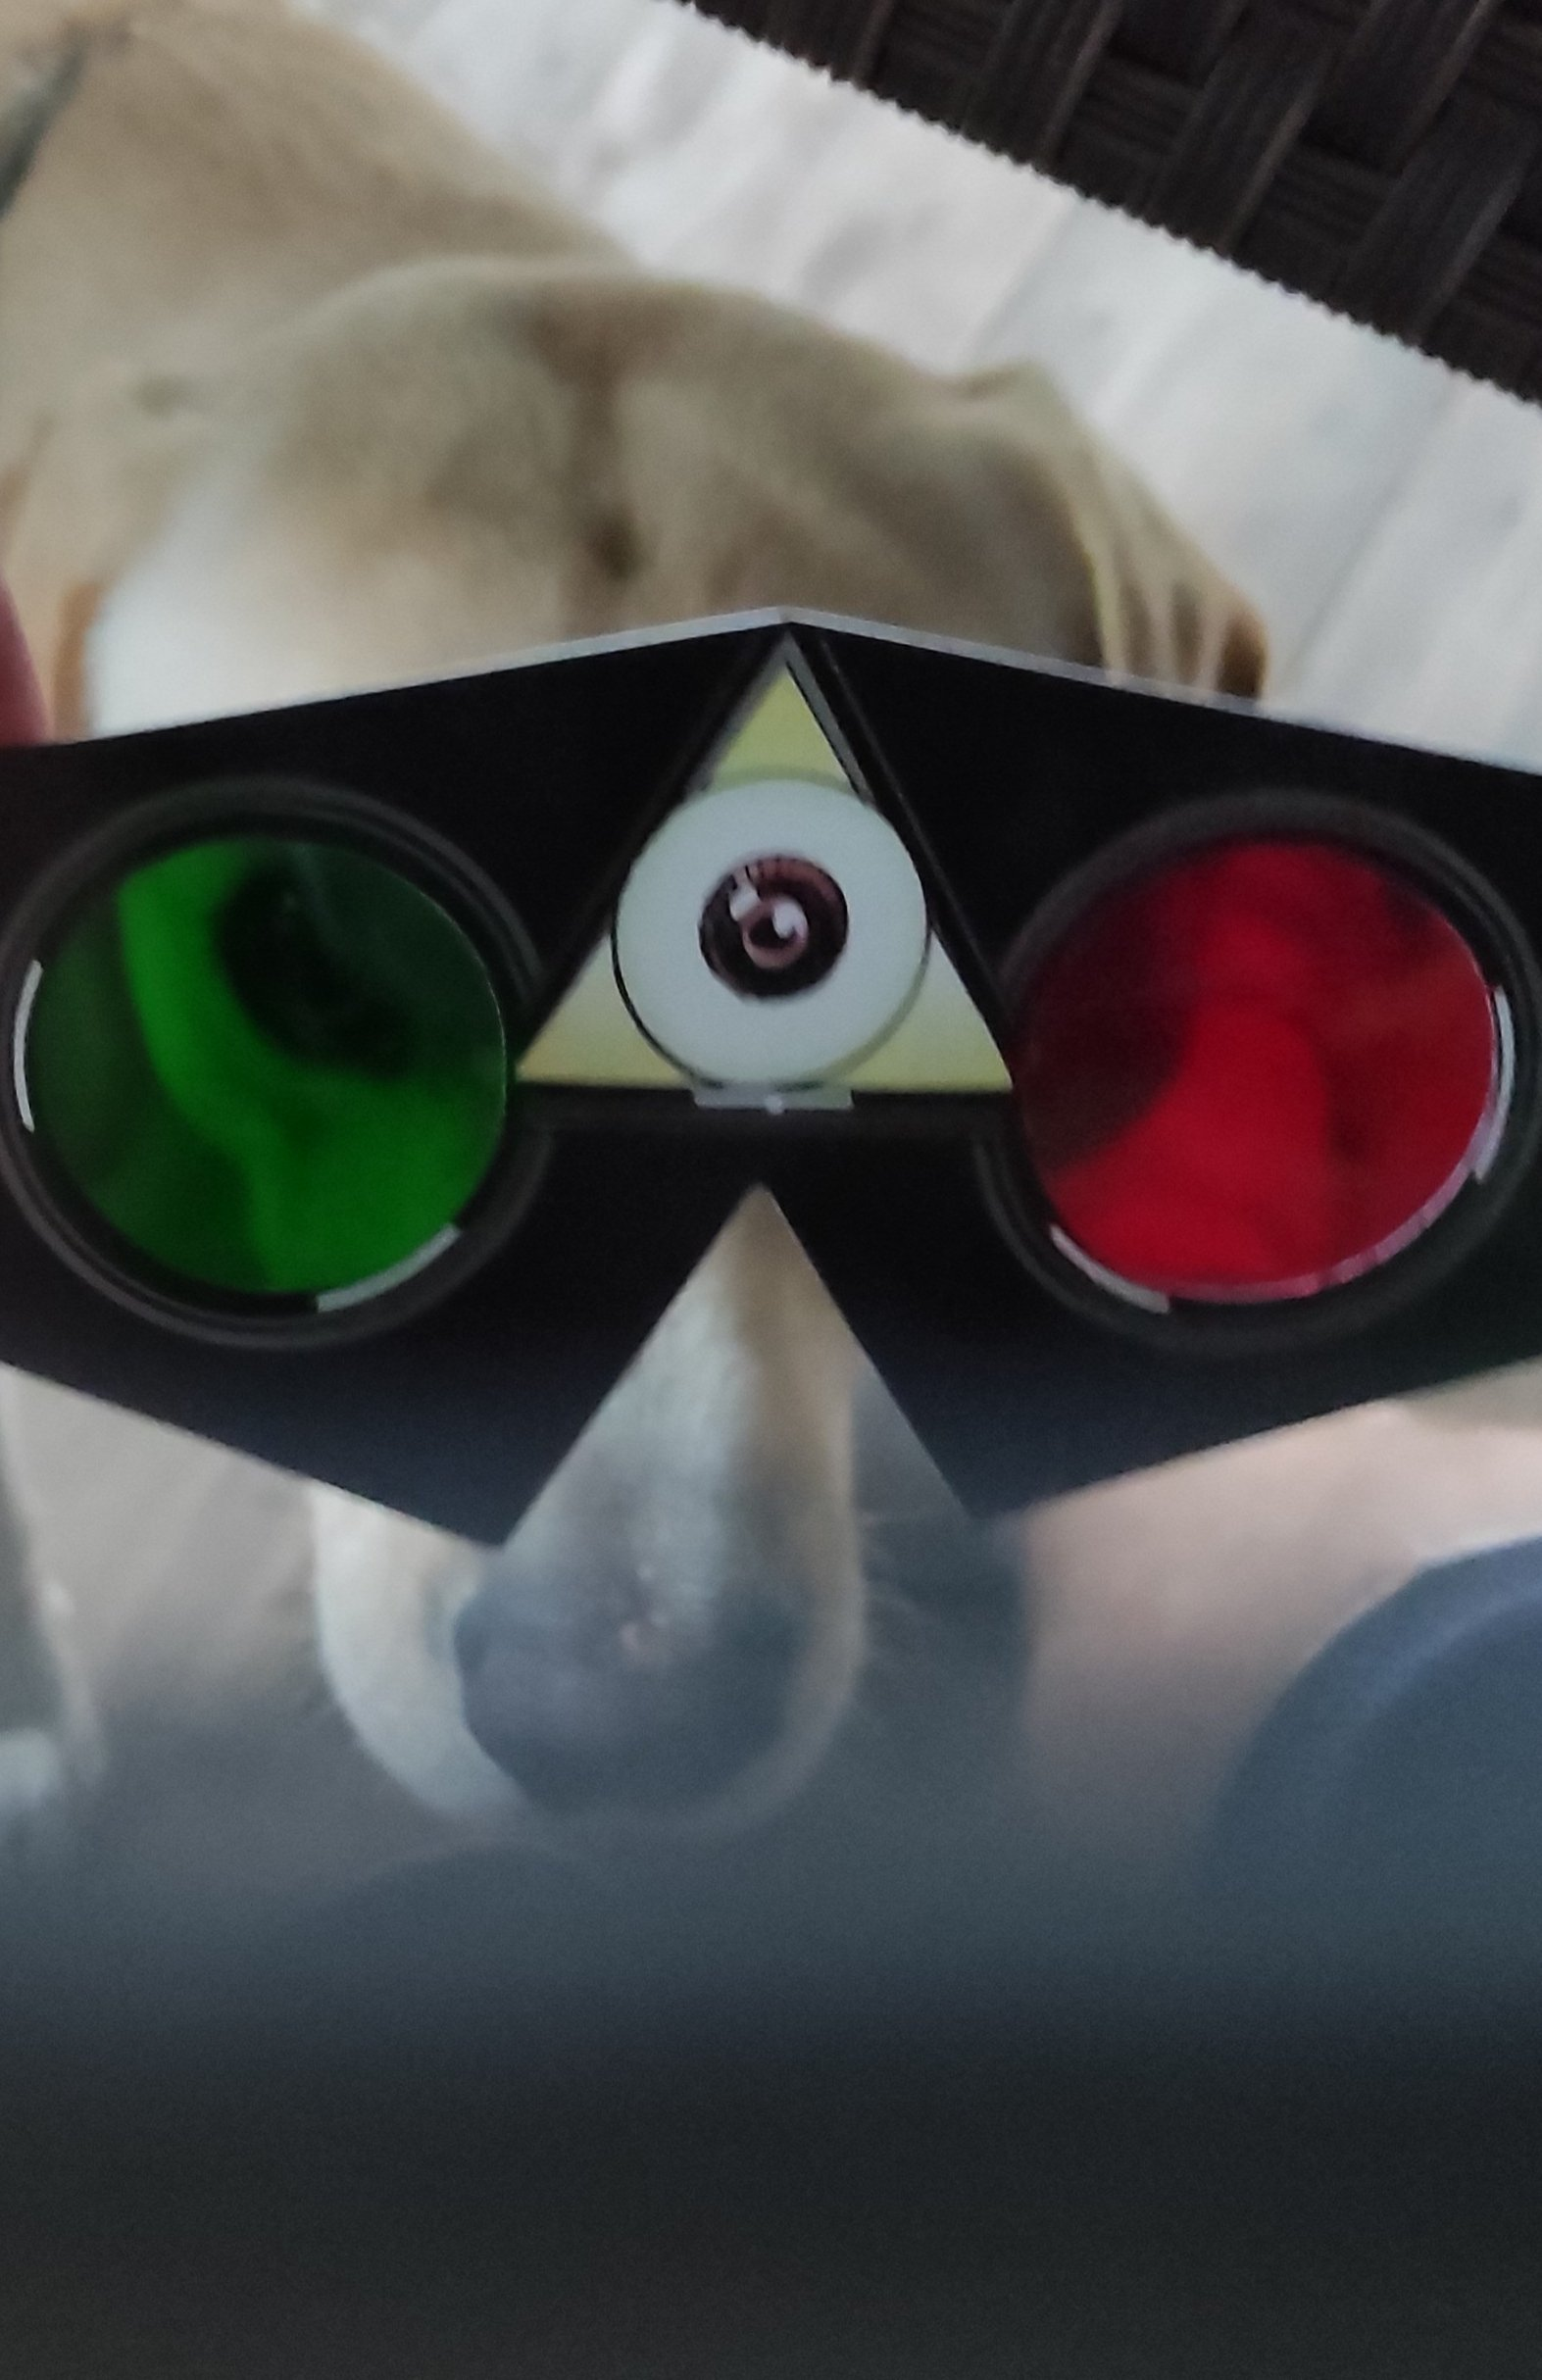 3D glasses are from book League of extraordinary genttleman: The Tempest by Alan Moore